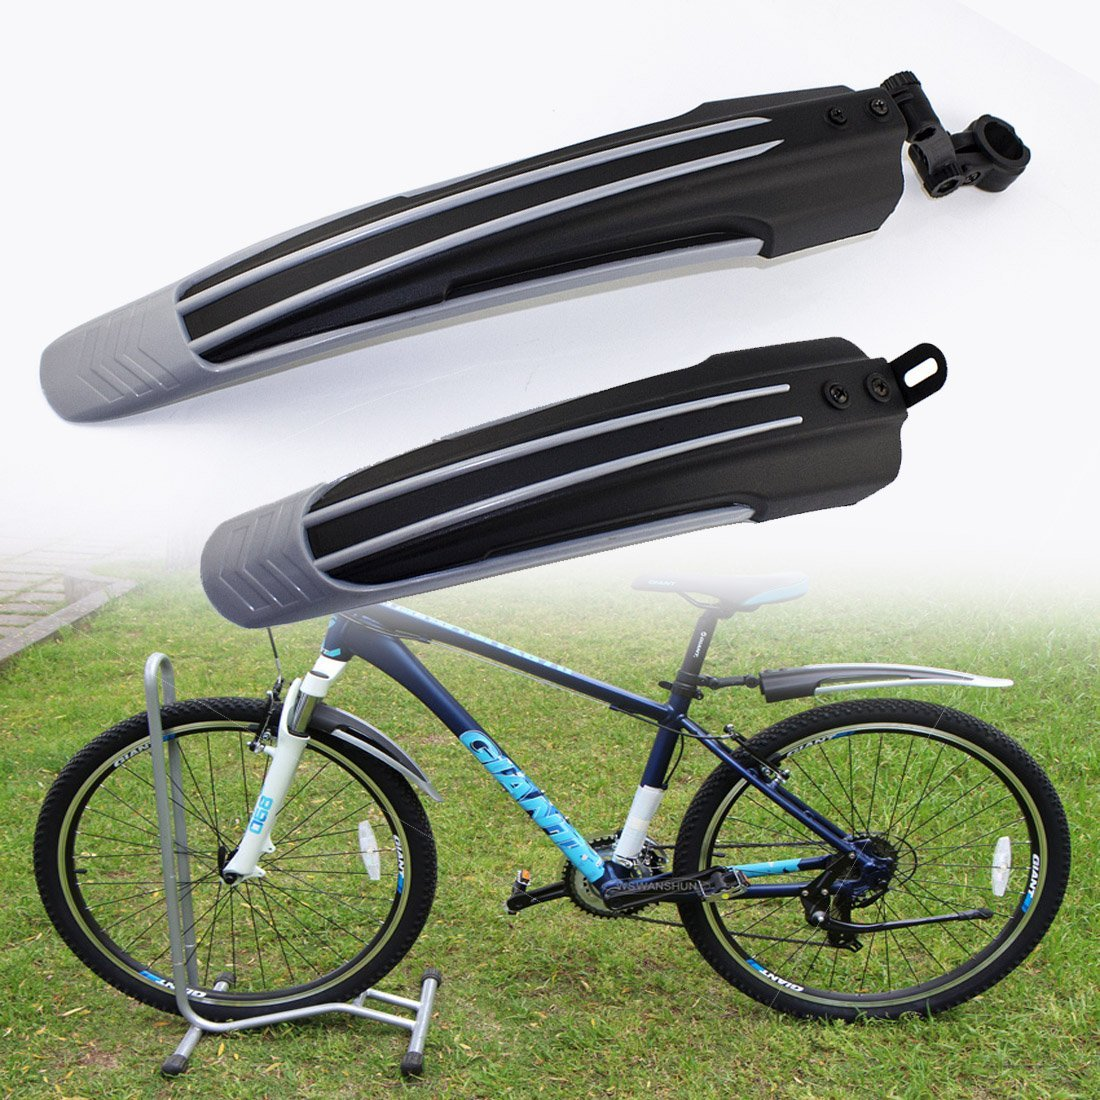 Ajustable Road Mountain Bike Bicycle Cyling Tire Front/Rear Mud Guards Mudguard Fender Set (Gray)